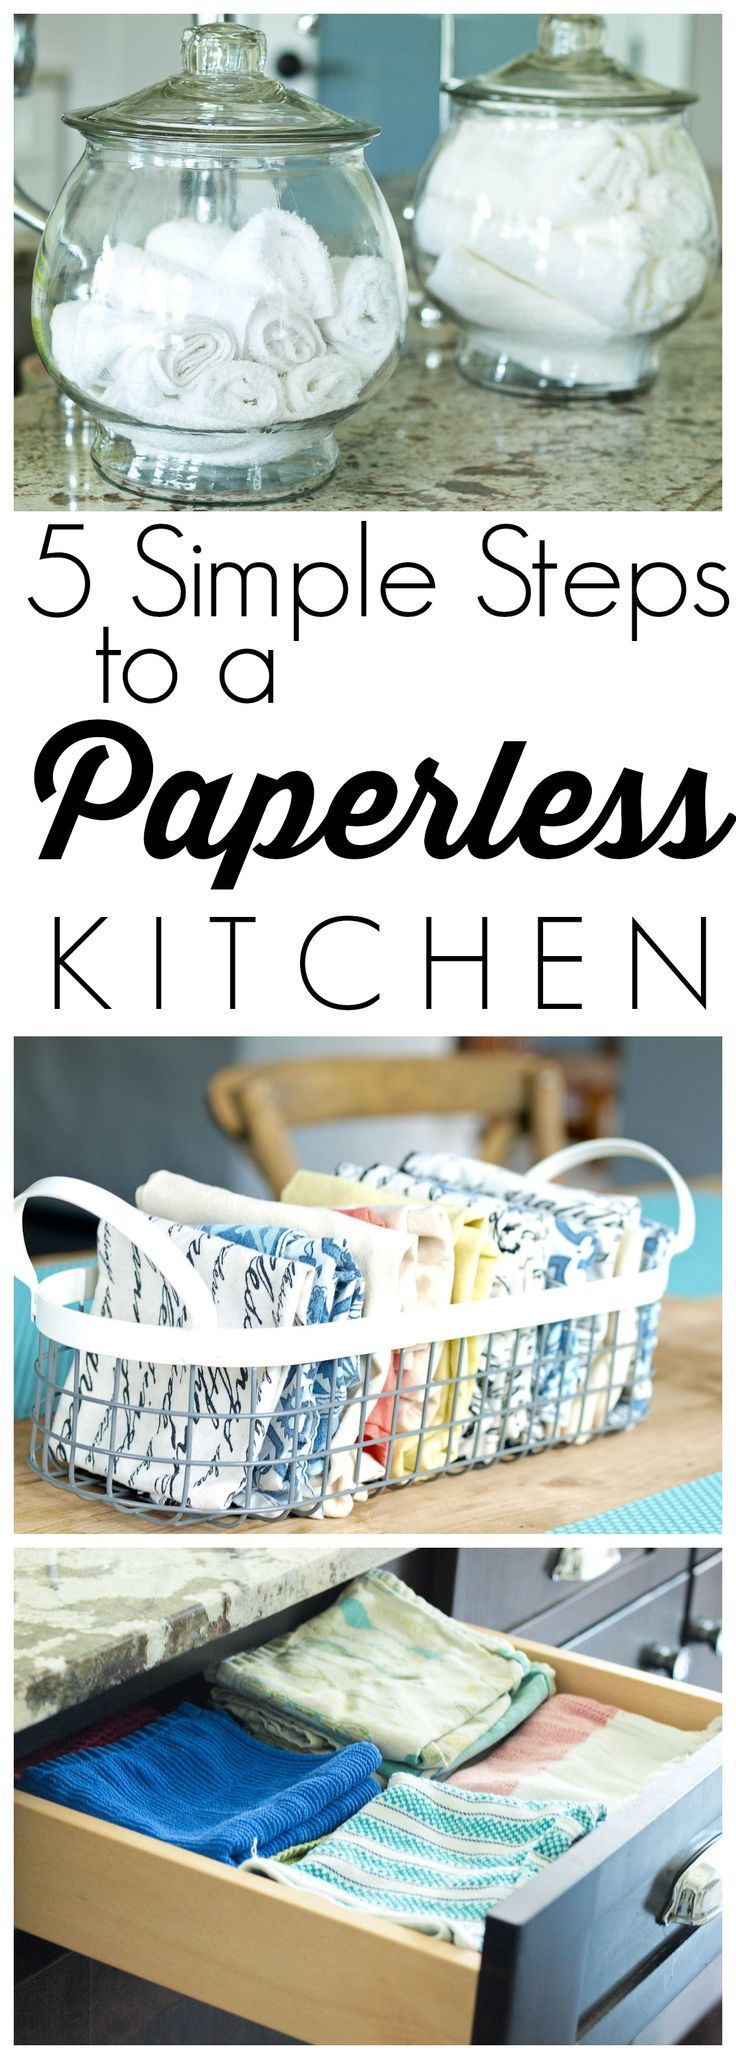 5 Simple Tips for Going Paperless in your Kitchen.  It's much easier and more convenient than you think!